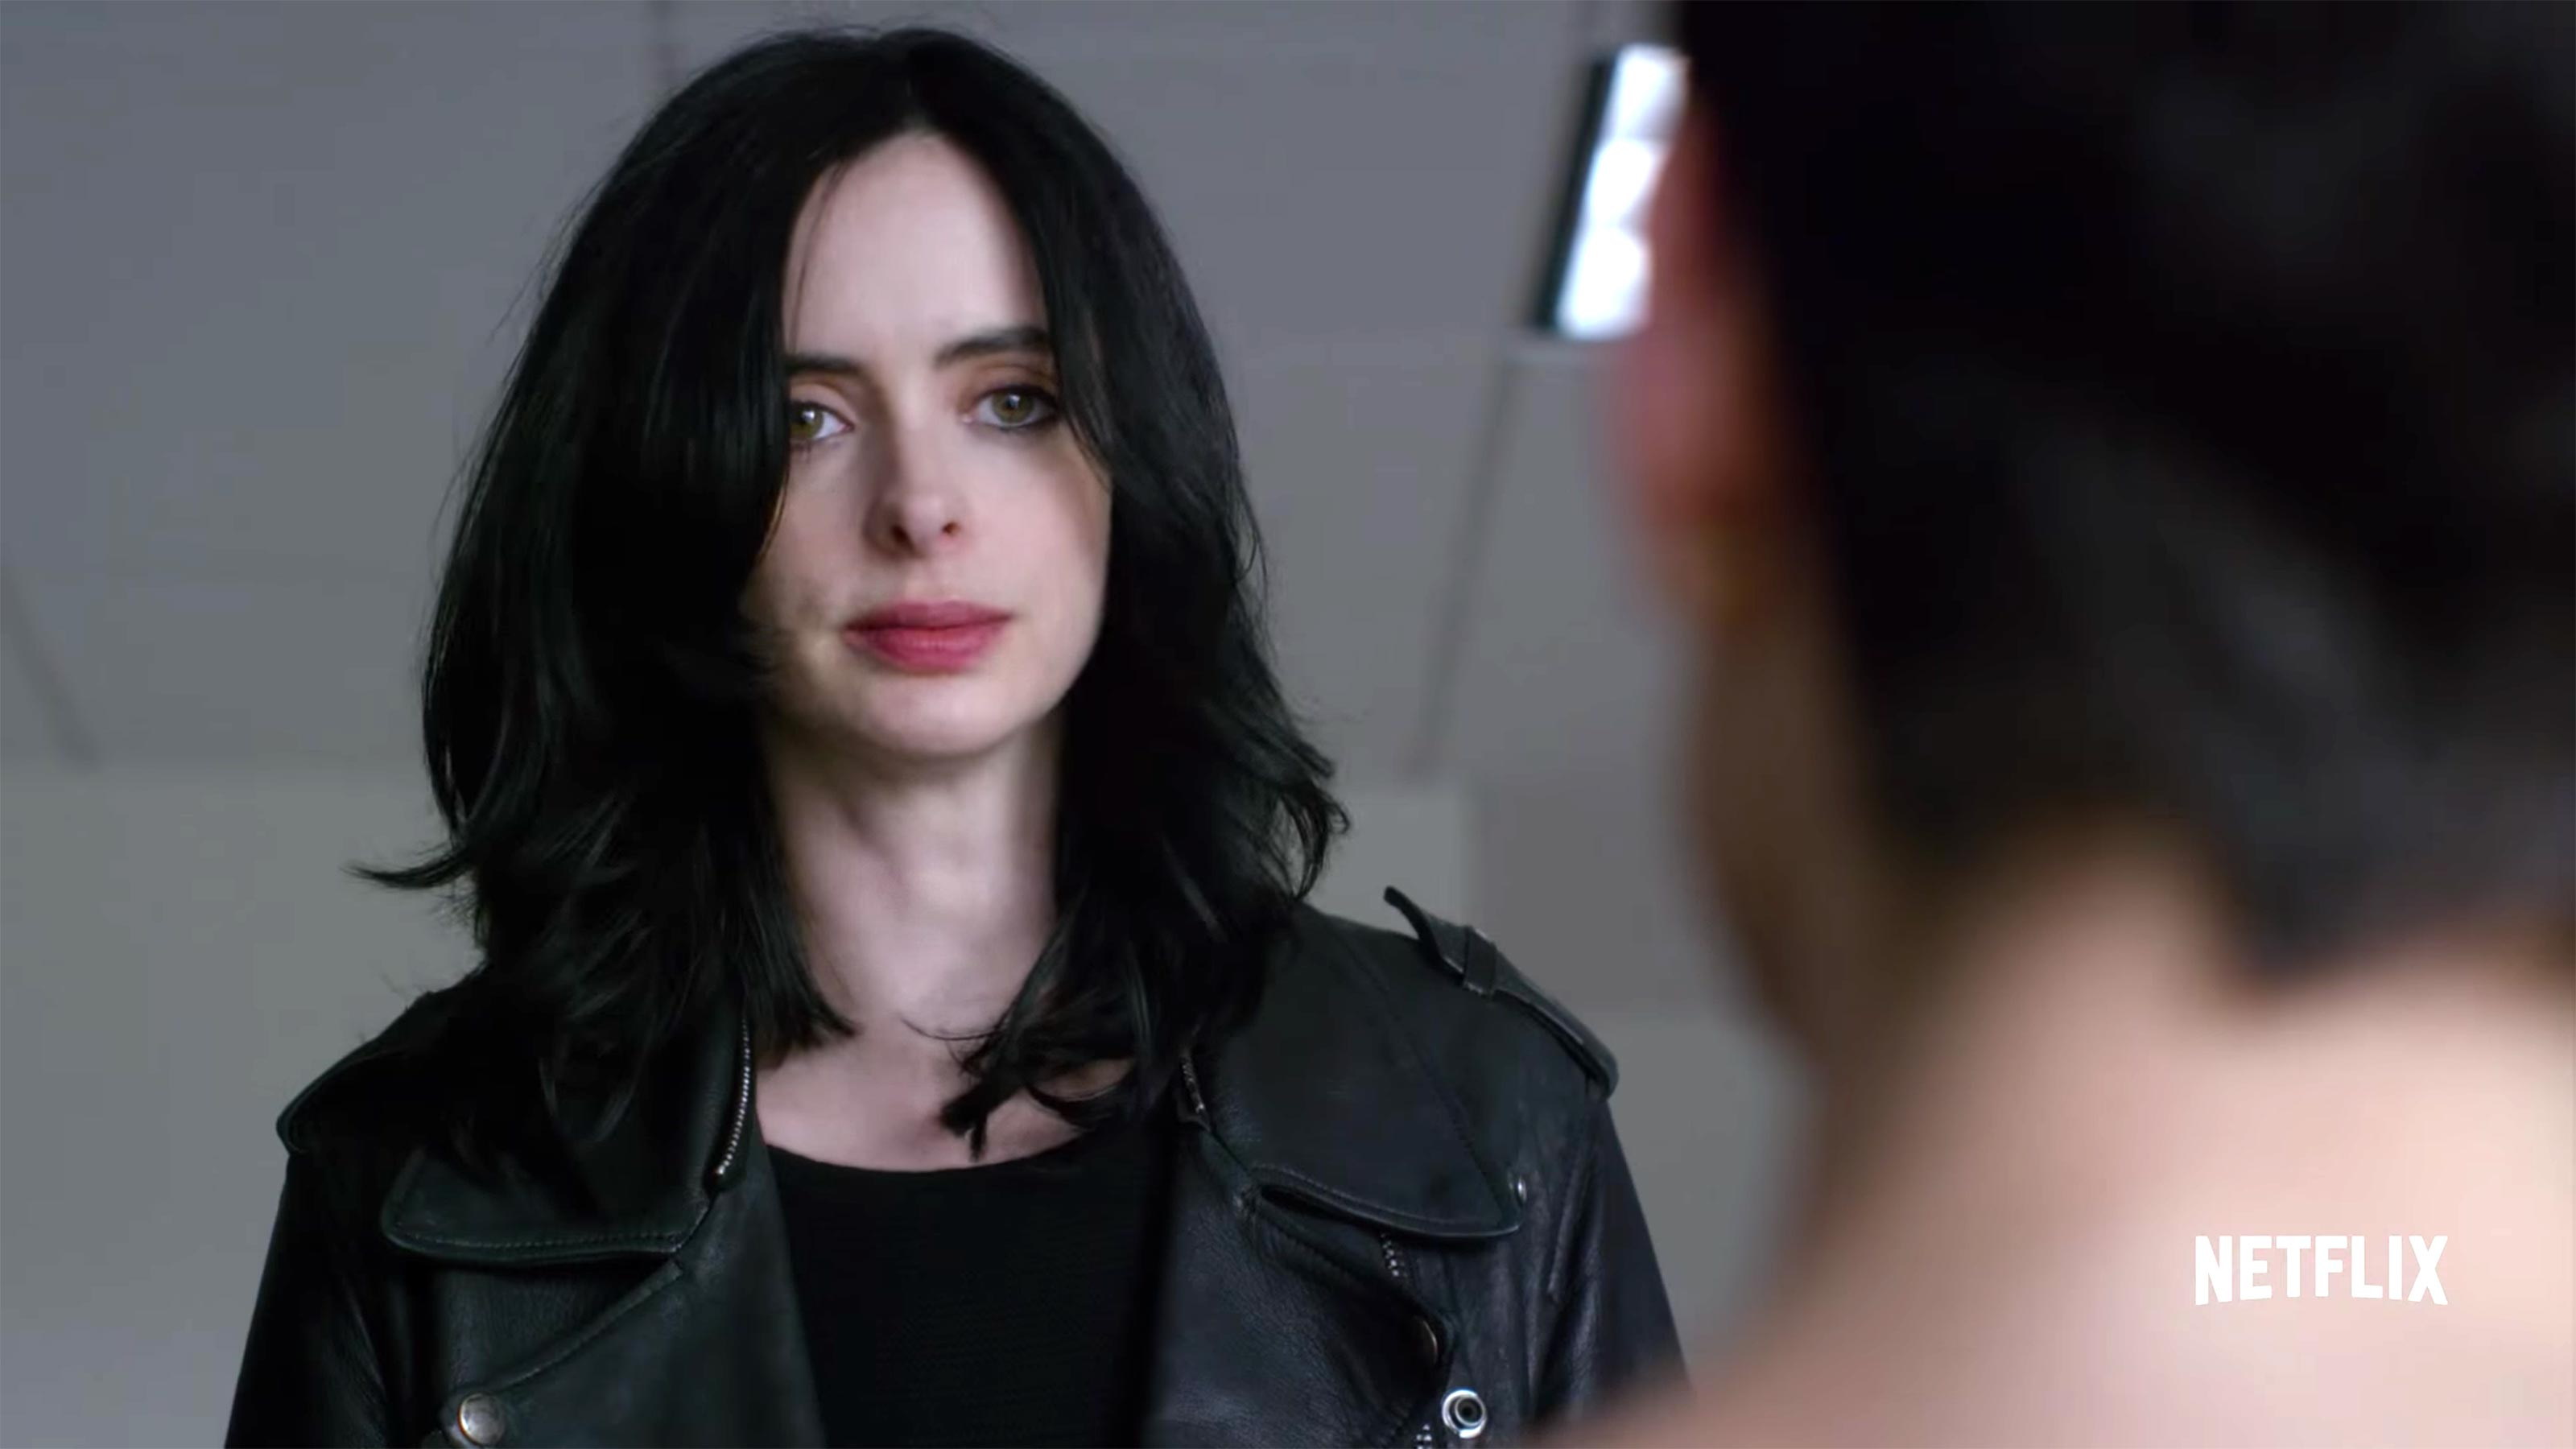 Marvel's Jessica Jones trailer doesn't pull any punches